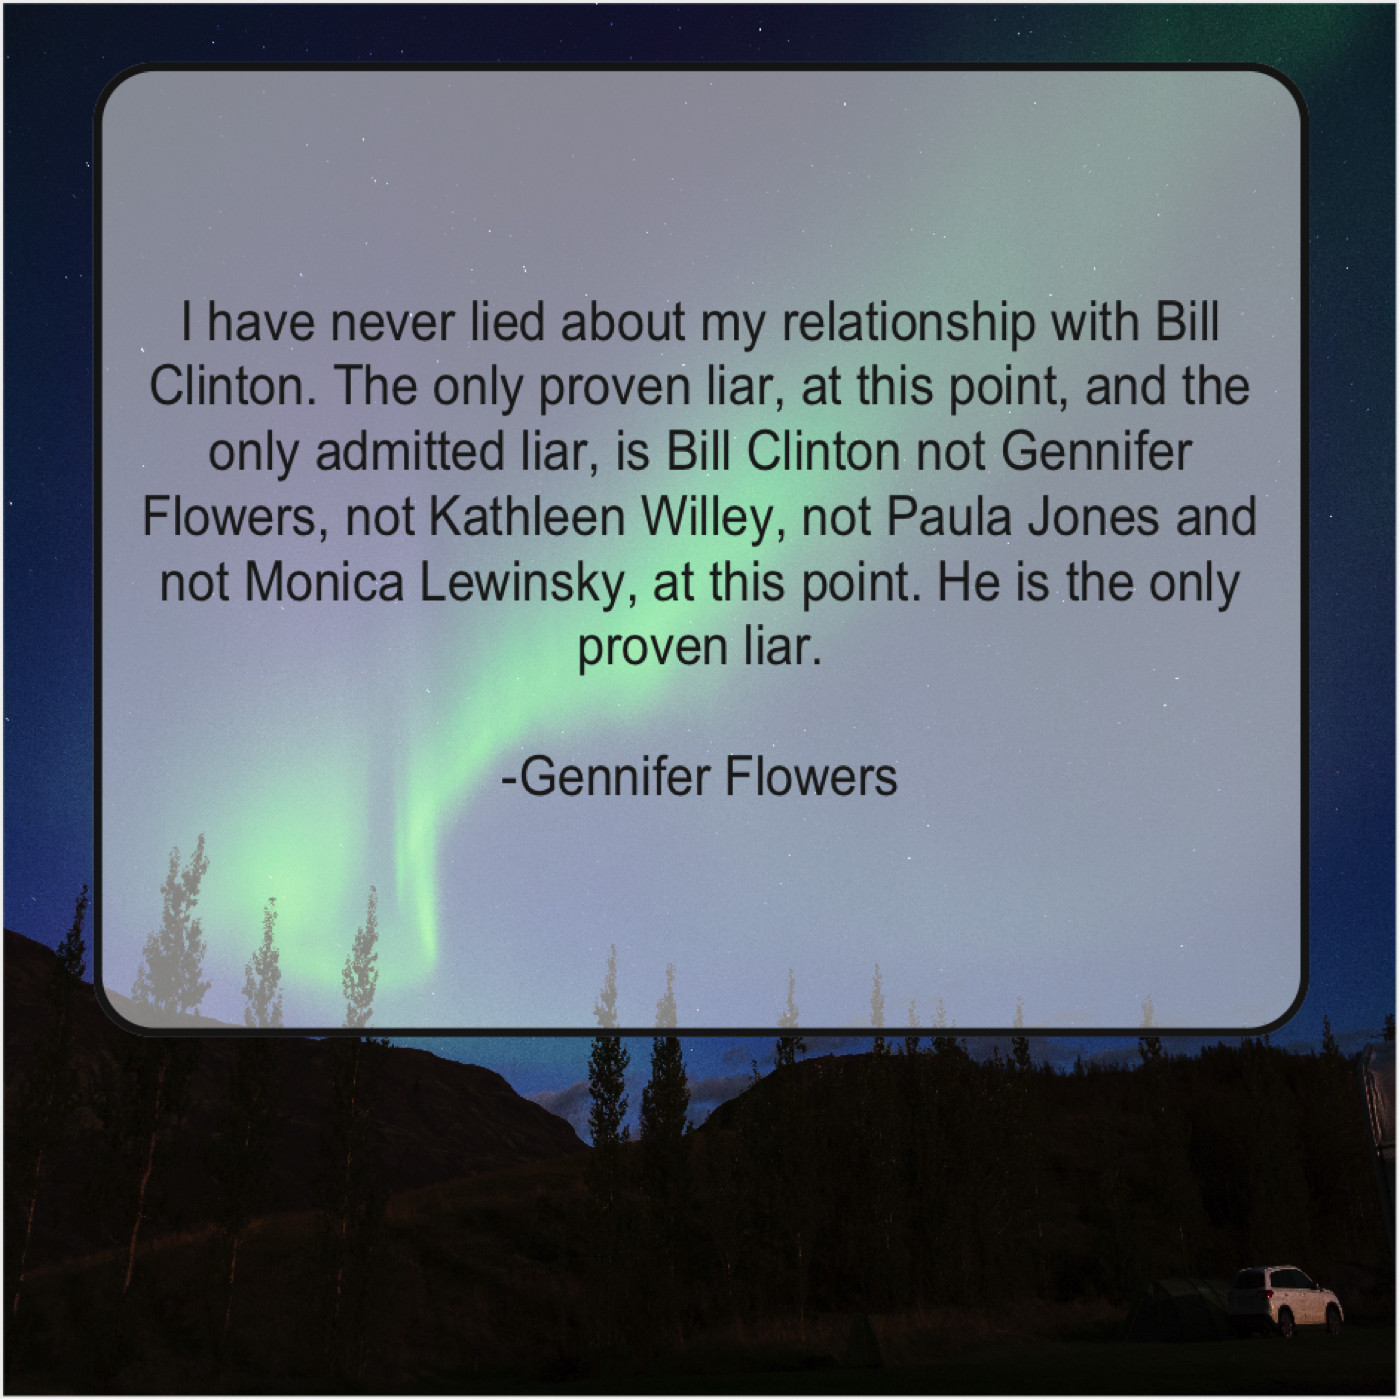 Gennifer Flowers - I have never lied about